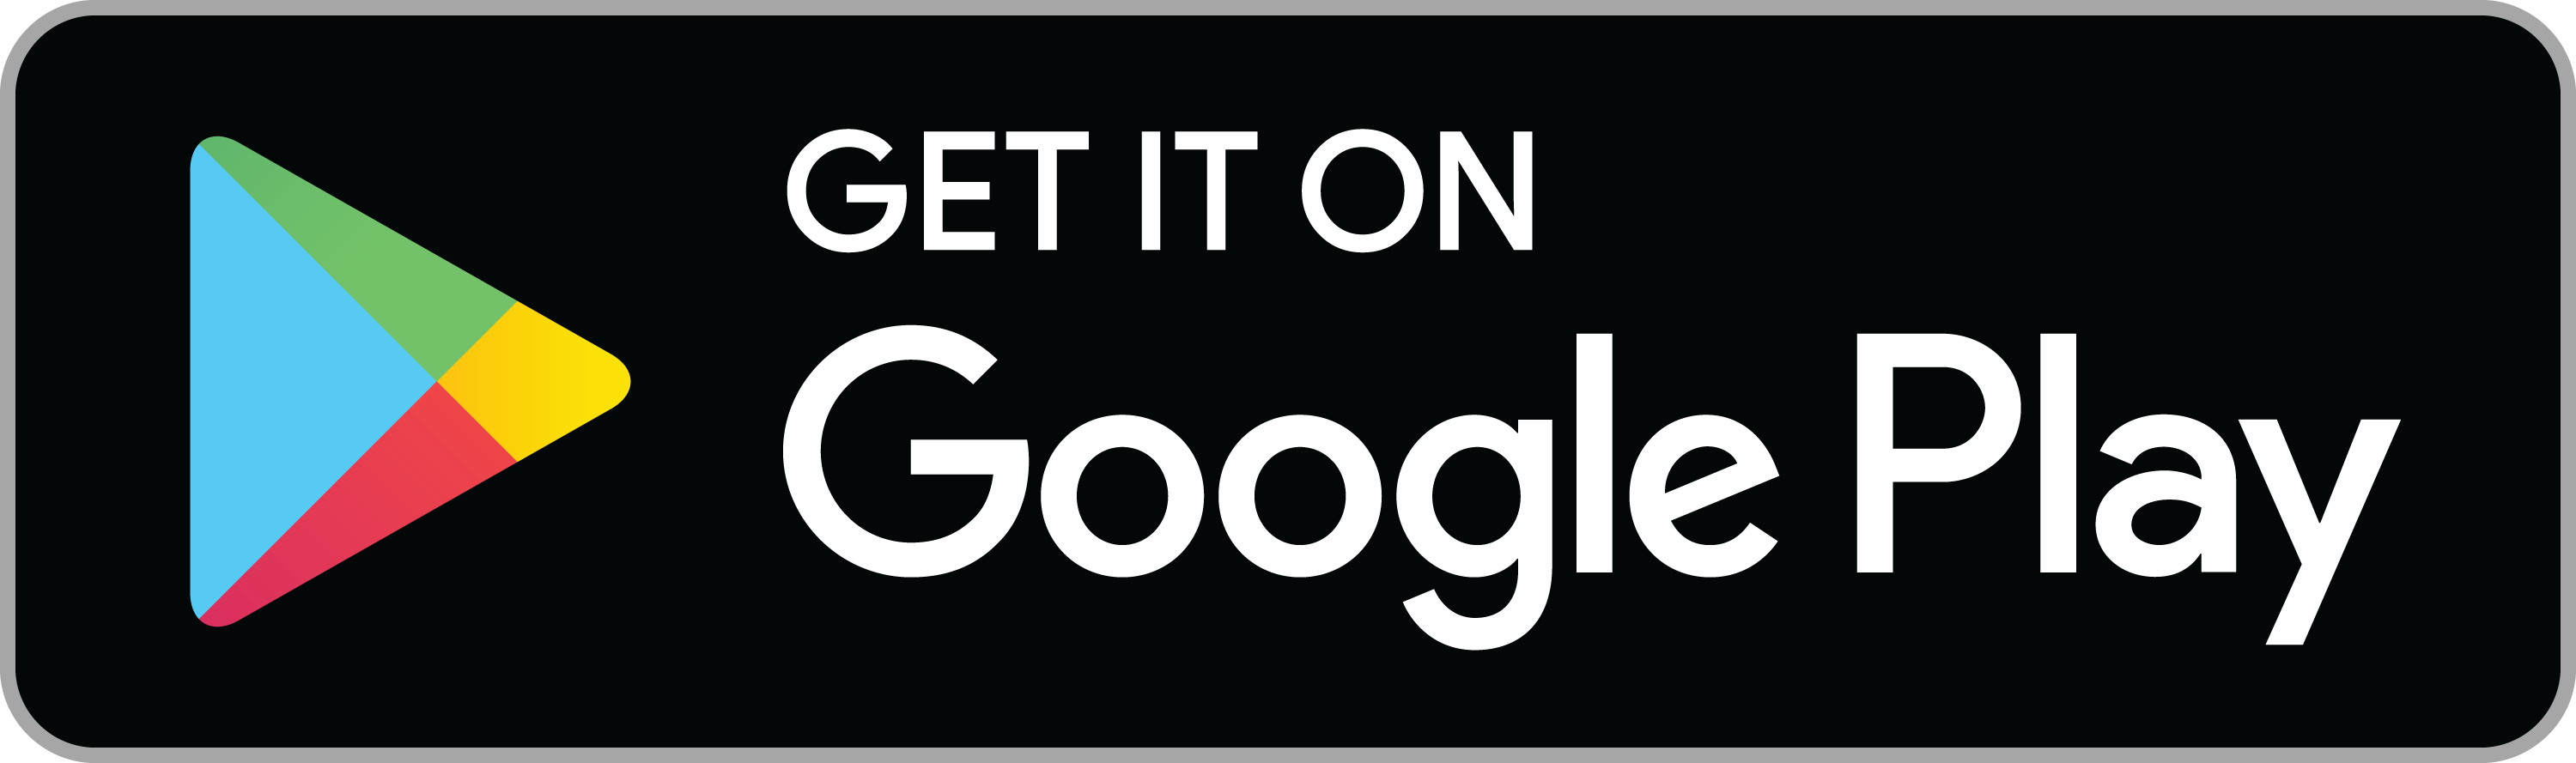 googlebadge png